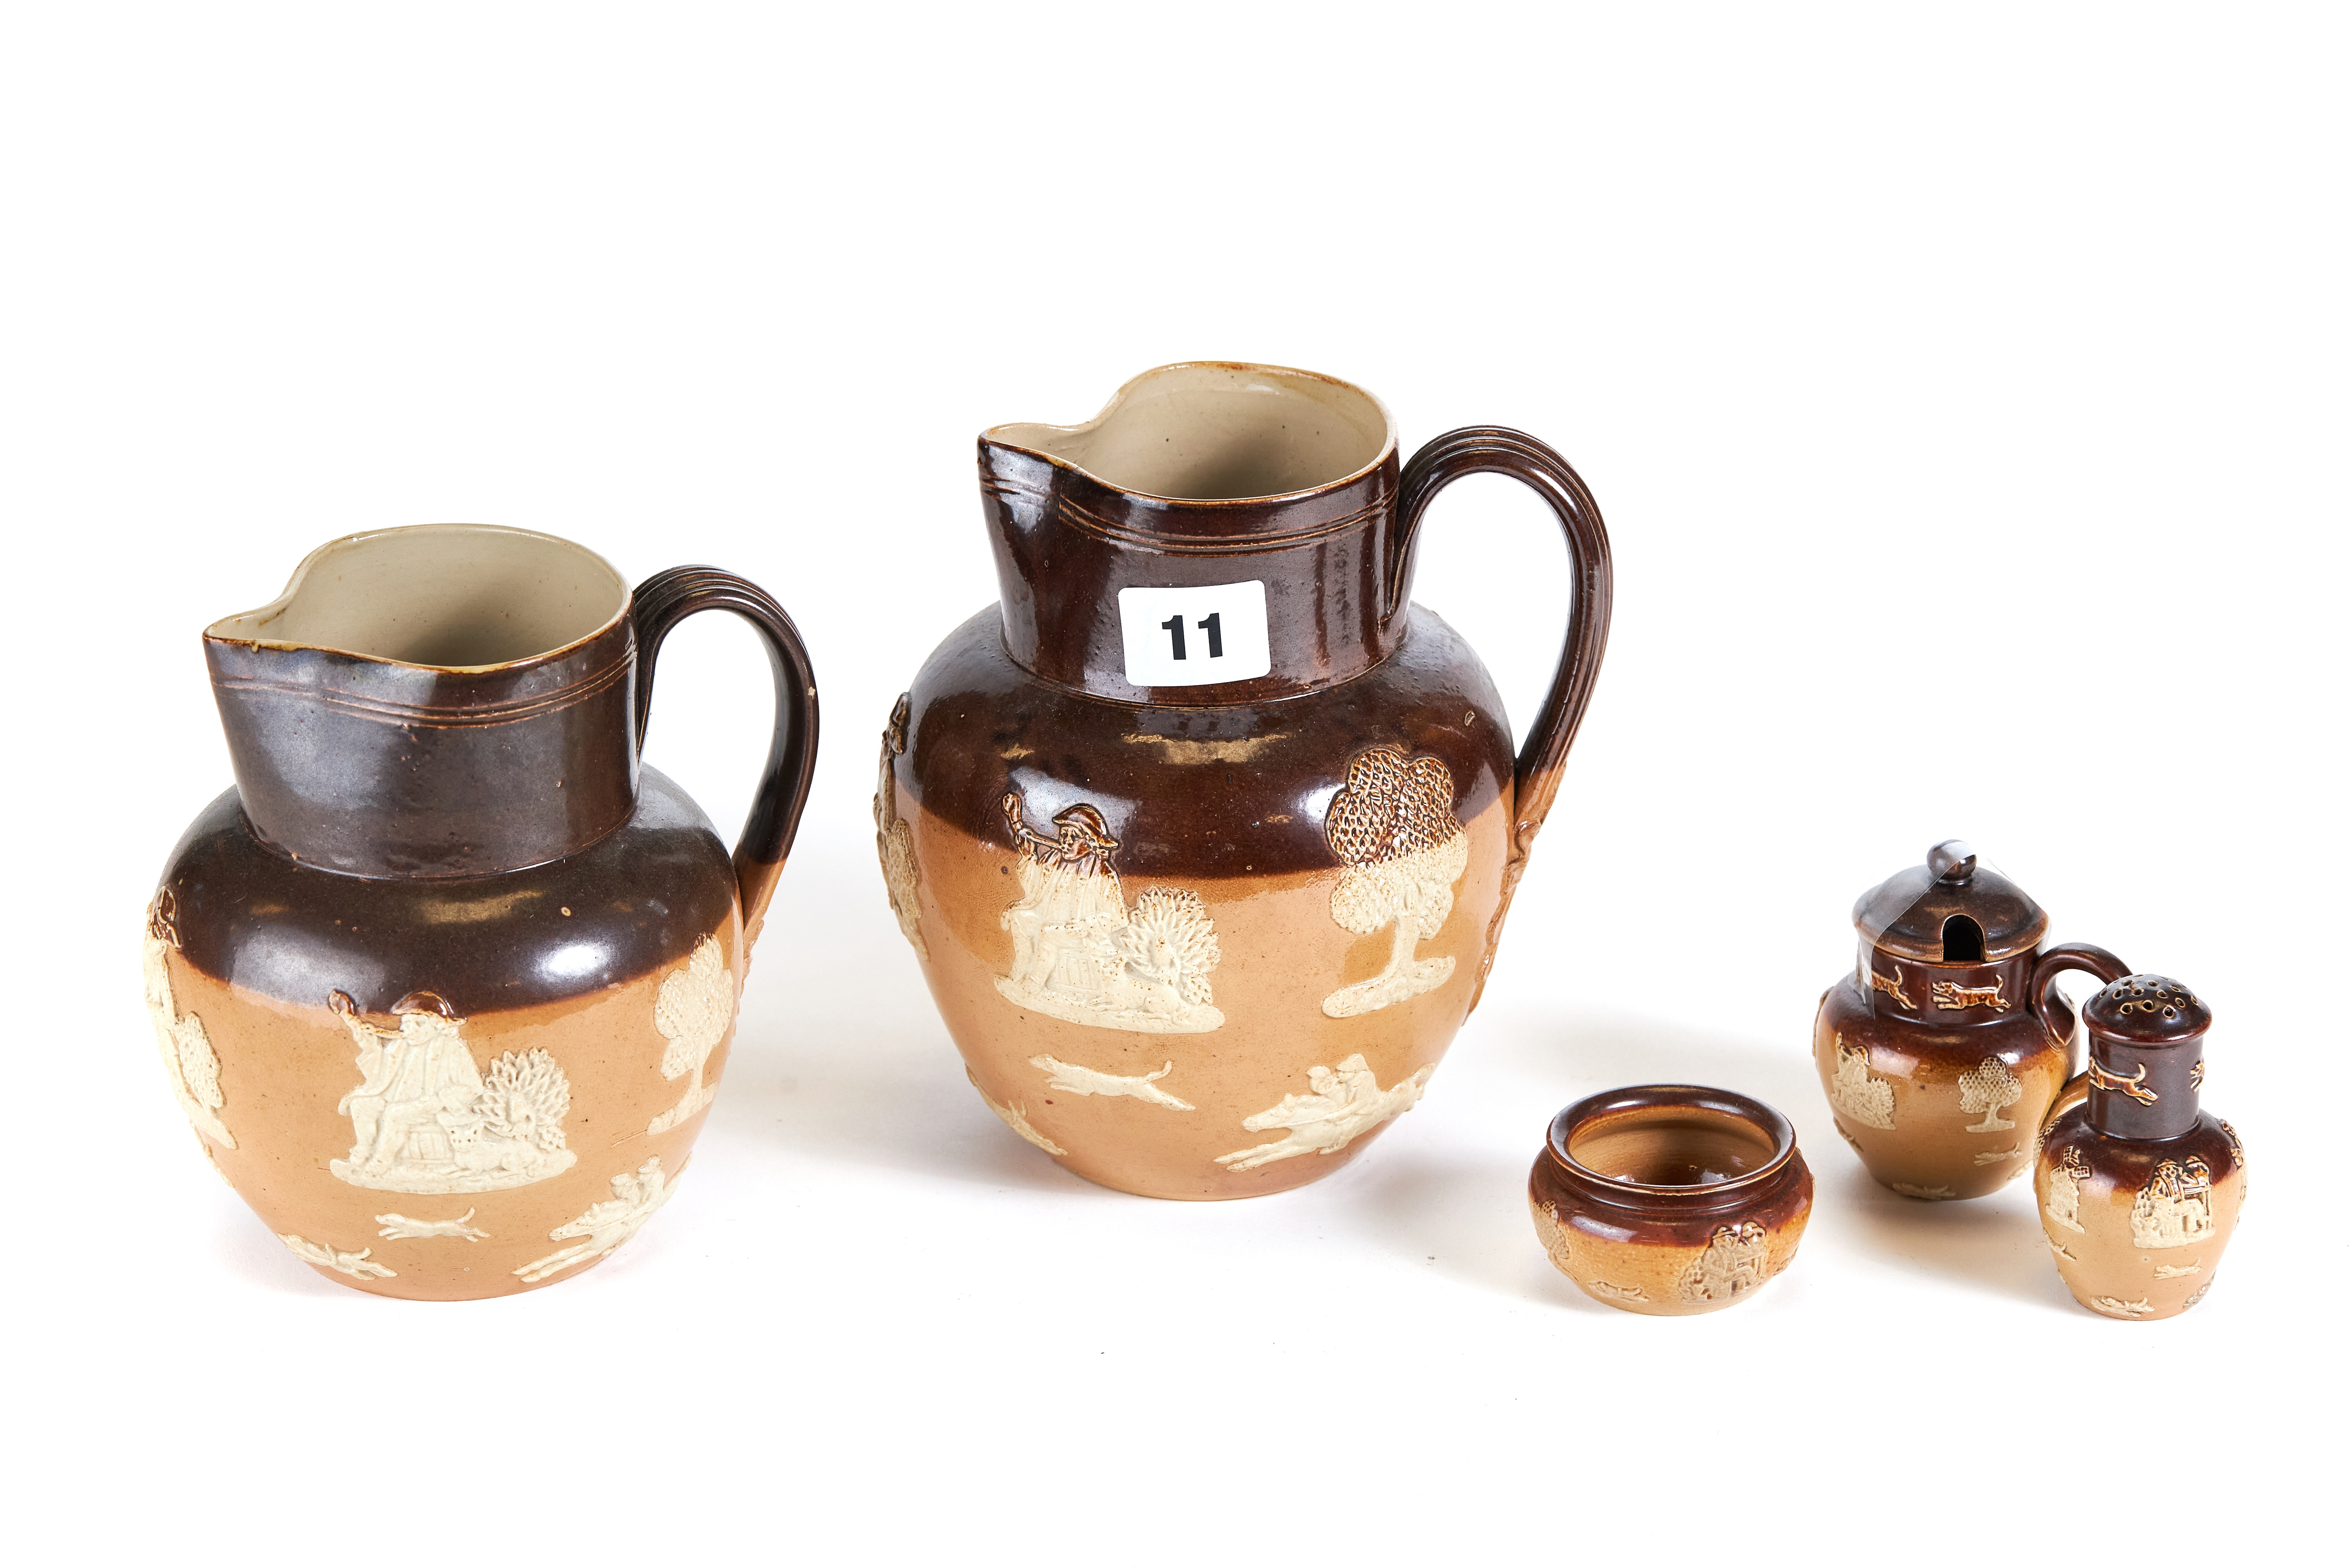 Lot 11 - A LATE 19TH CENTURY LAMBETH DOULTON STONEWARE THREE PIECE CONDIMENT SET with toper and hound